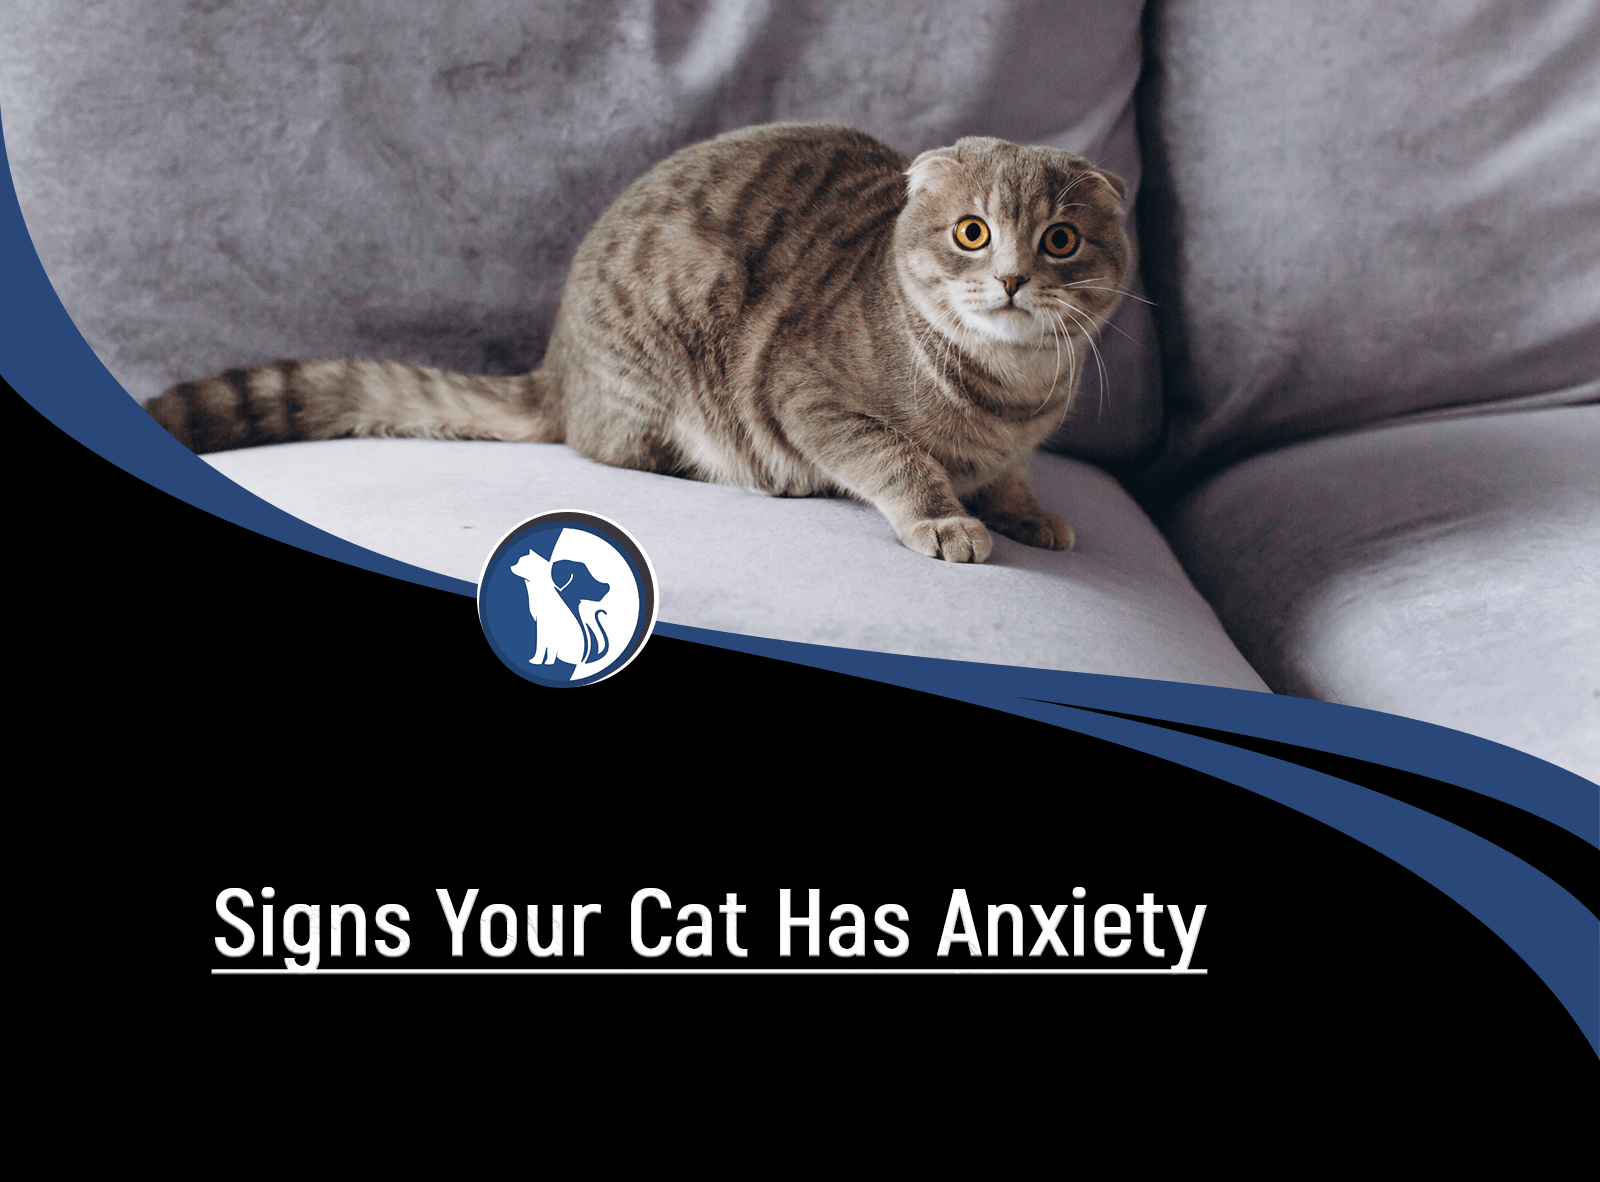 Signs Your Cat Has Anxiety and How to Treat It